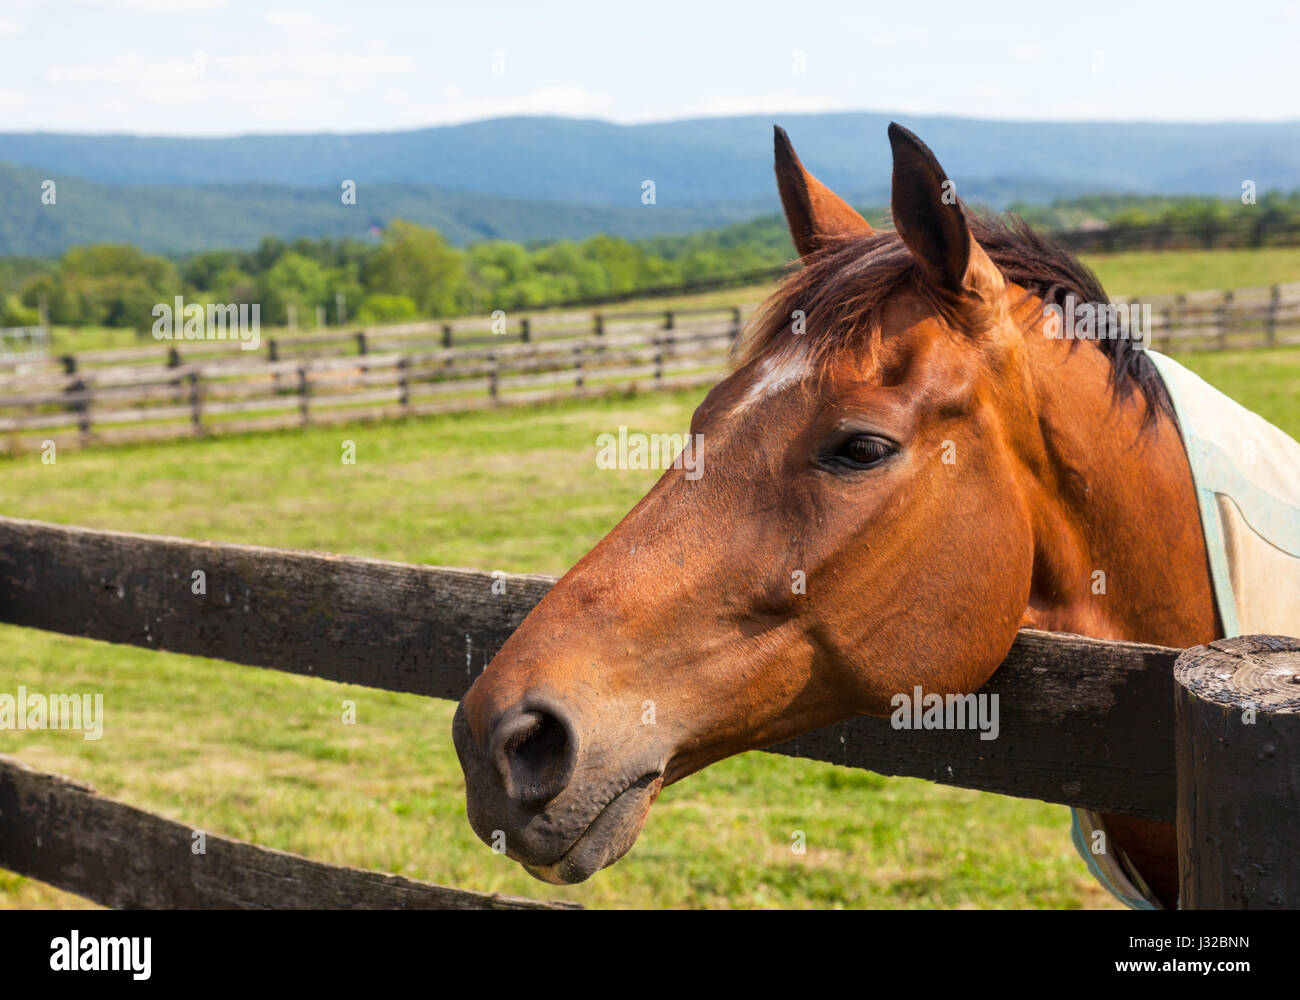 Head of a brown horse in a meadow leaning on a wooden fence with hills in background Stock Photo